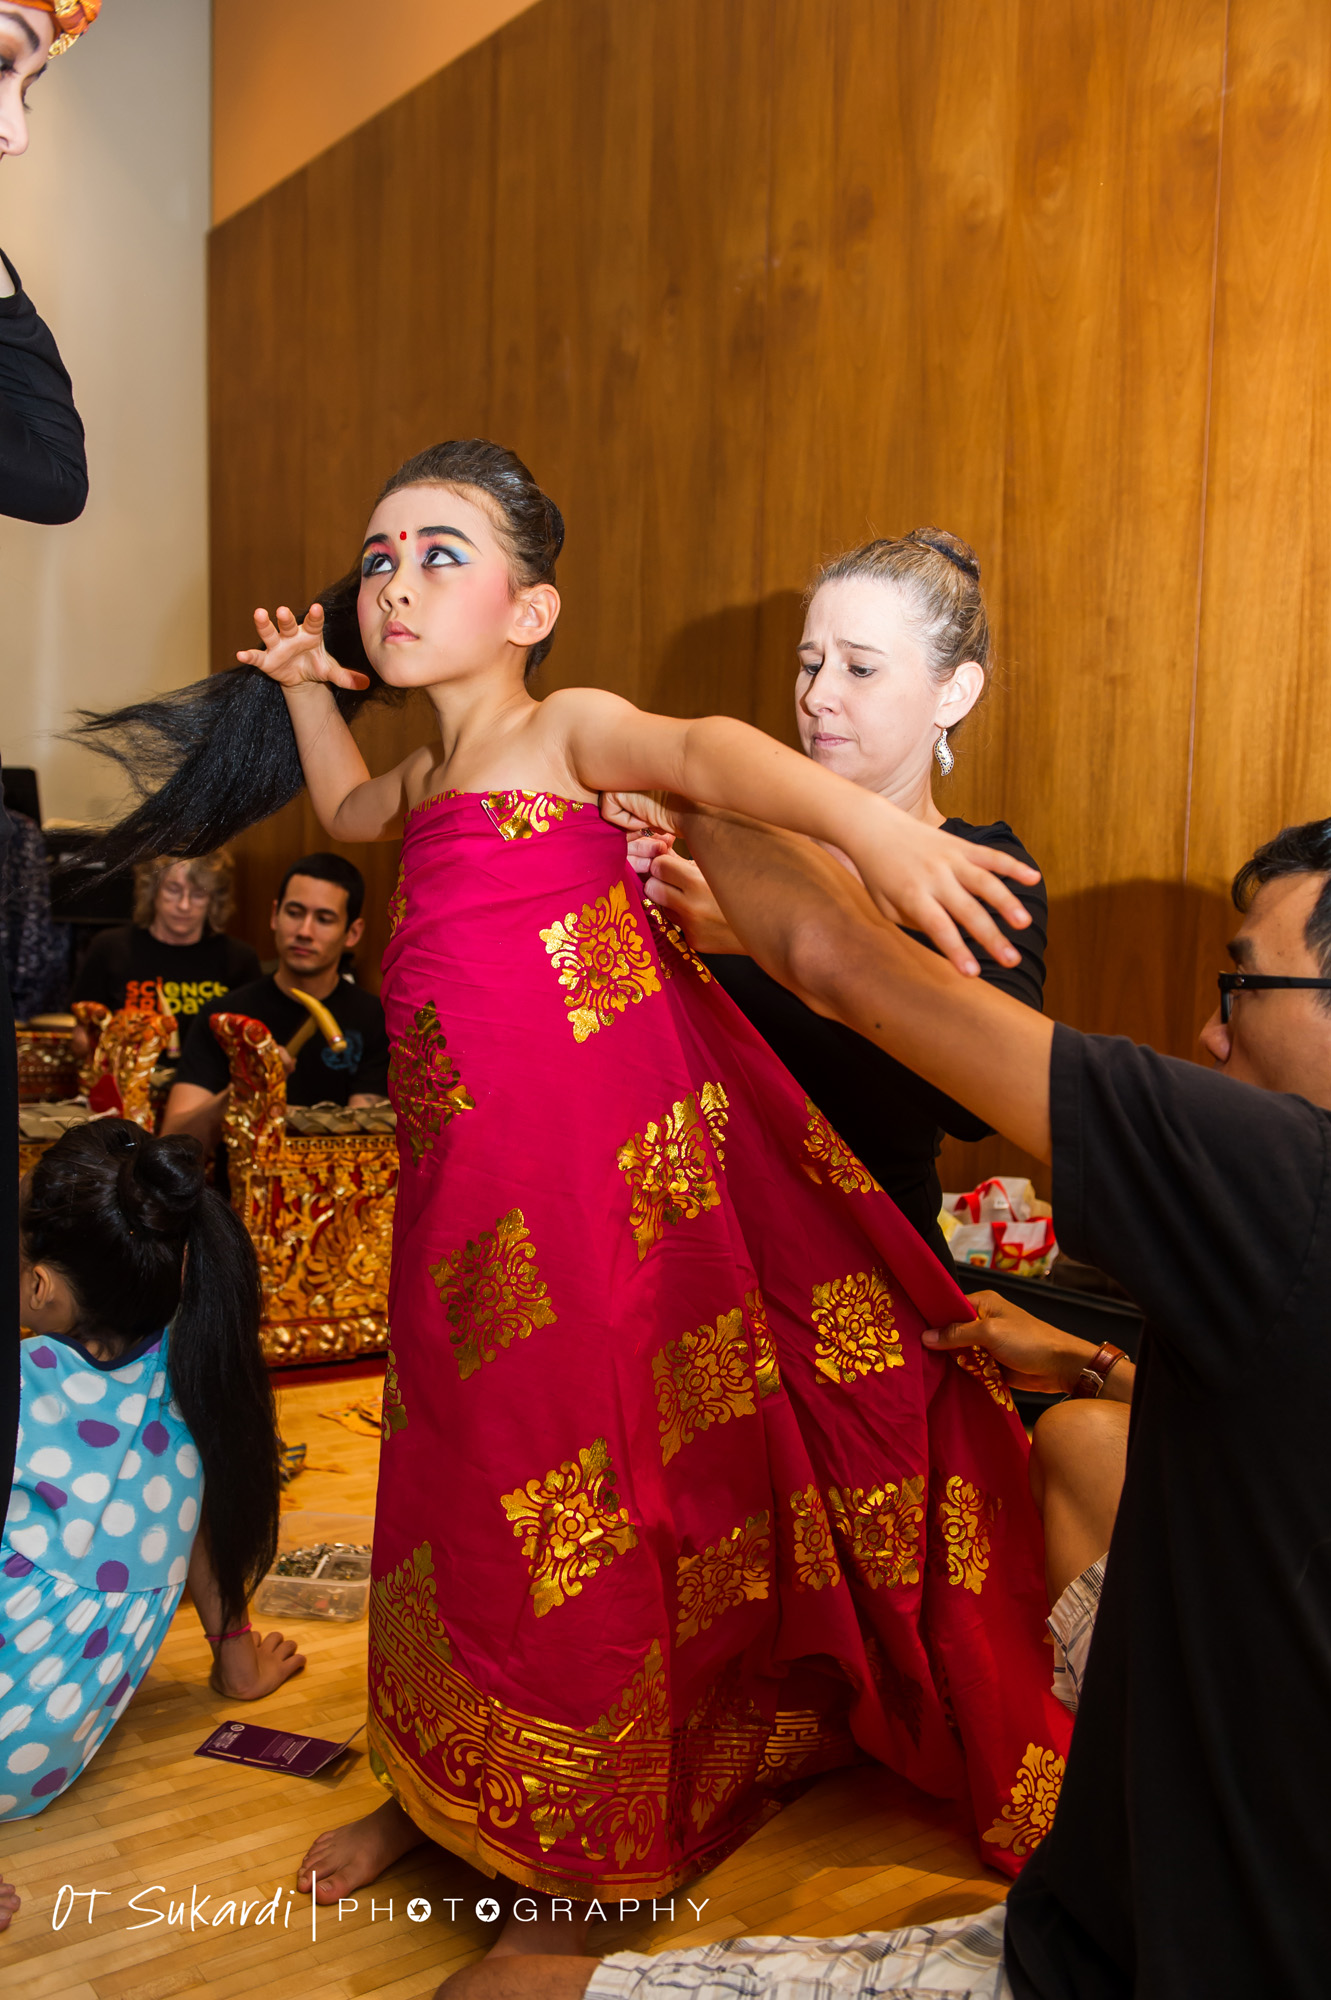 Young performer is dressed in pink sarong